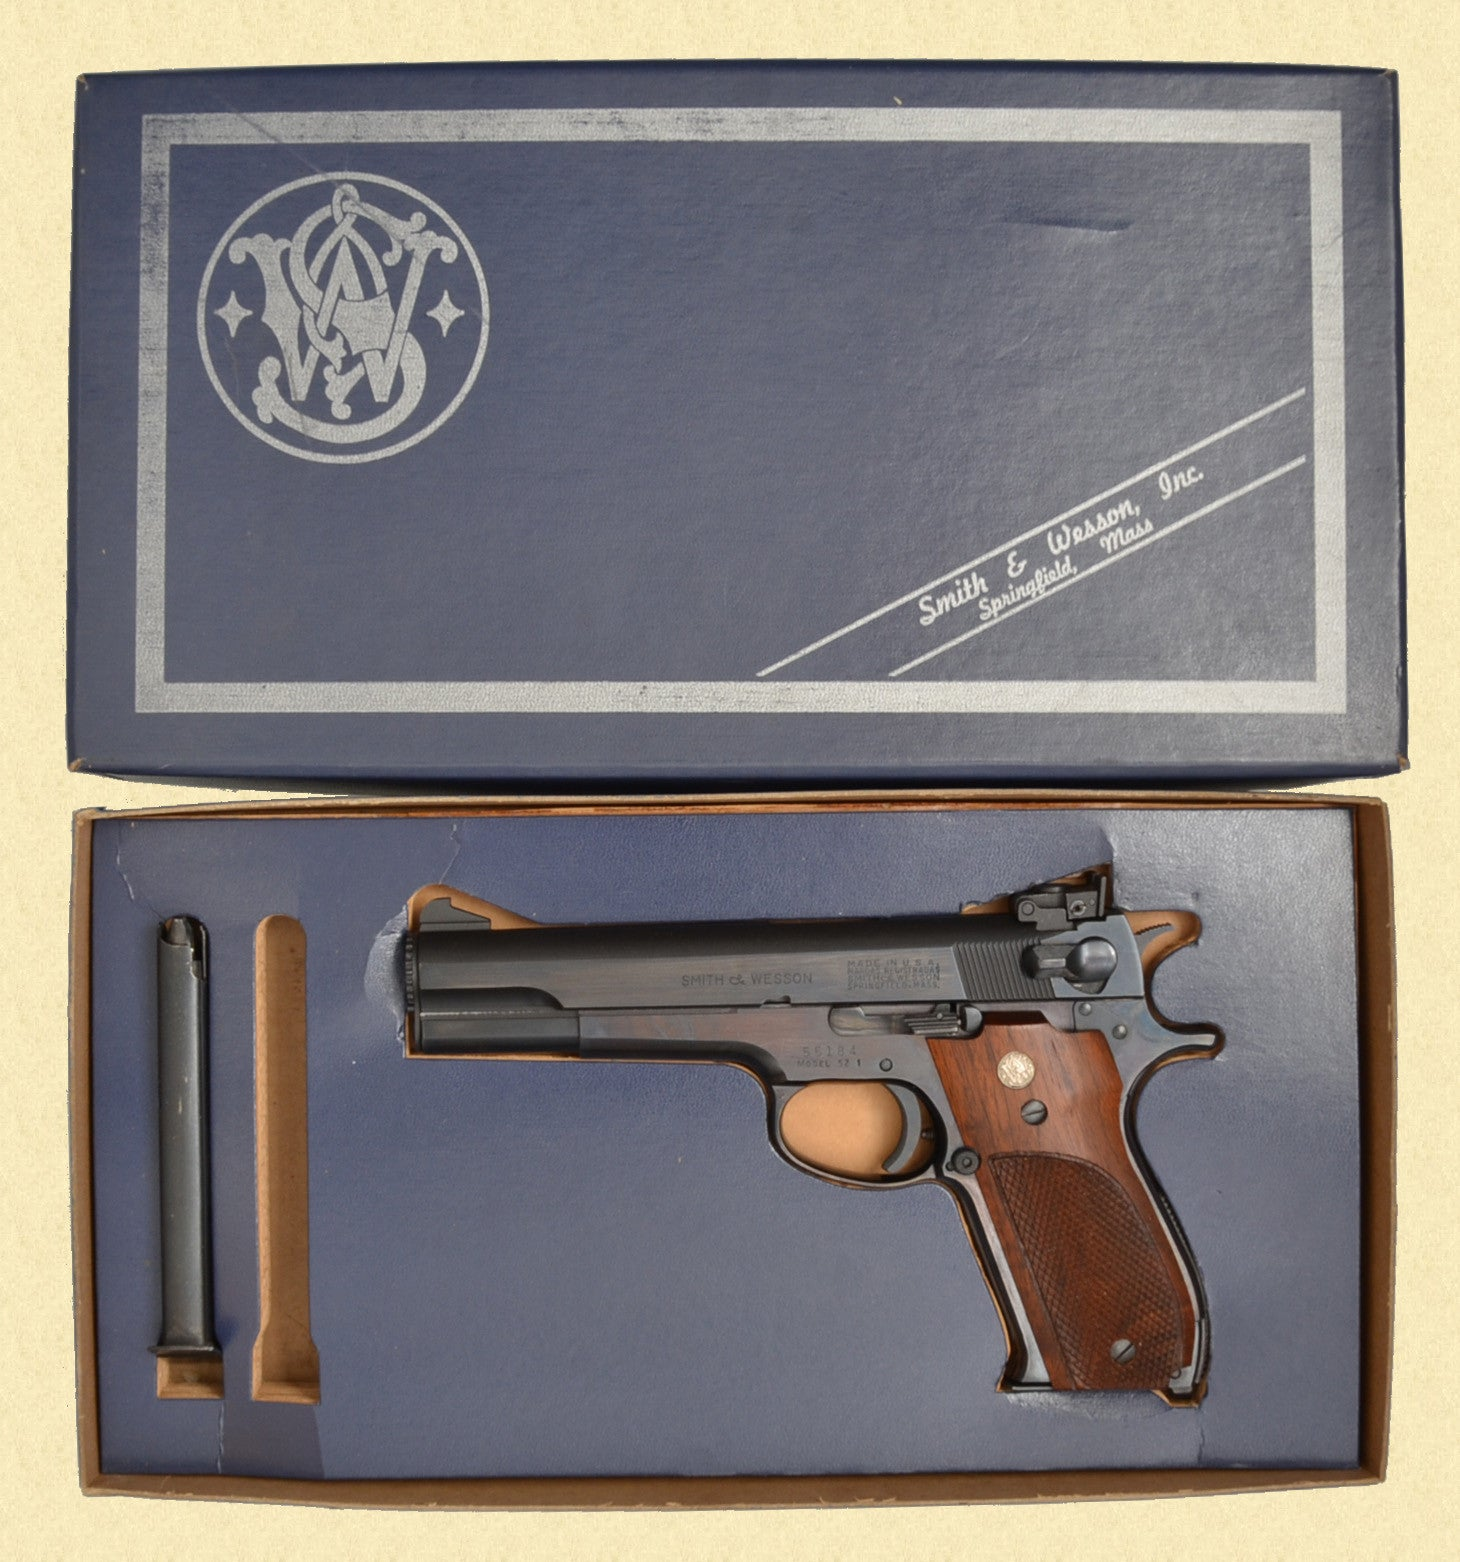 SMITH & WESSON 52-1